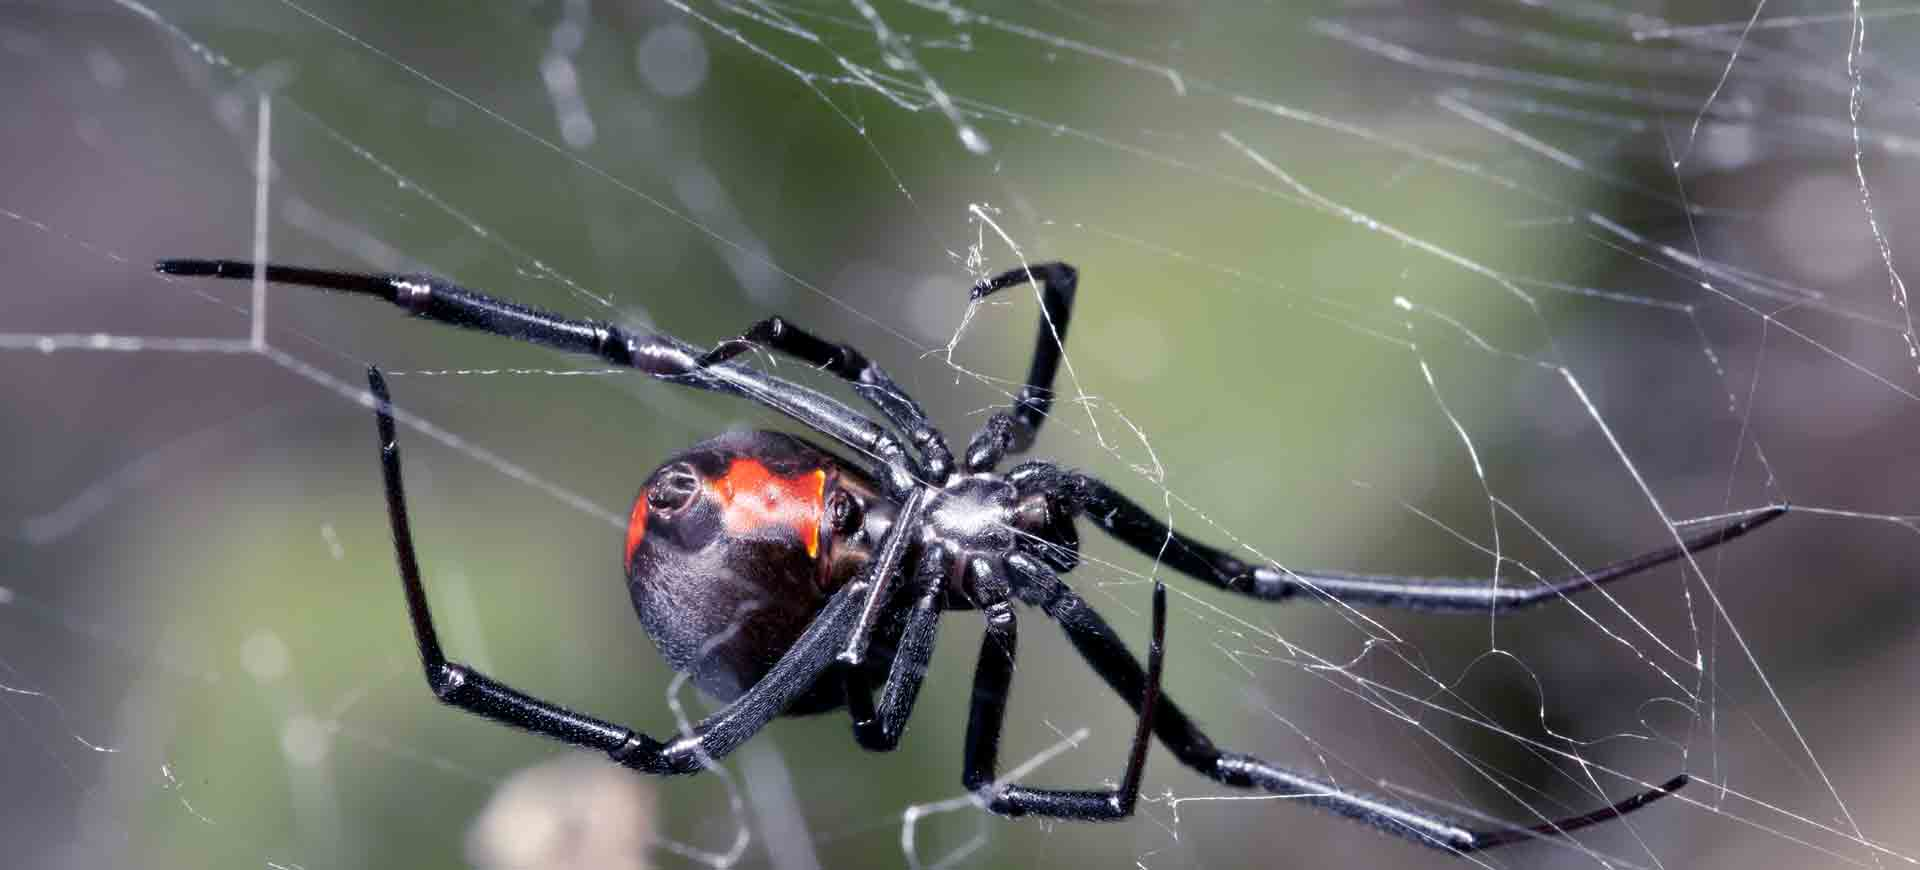 spider pest control lakeside